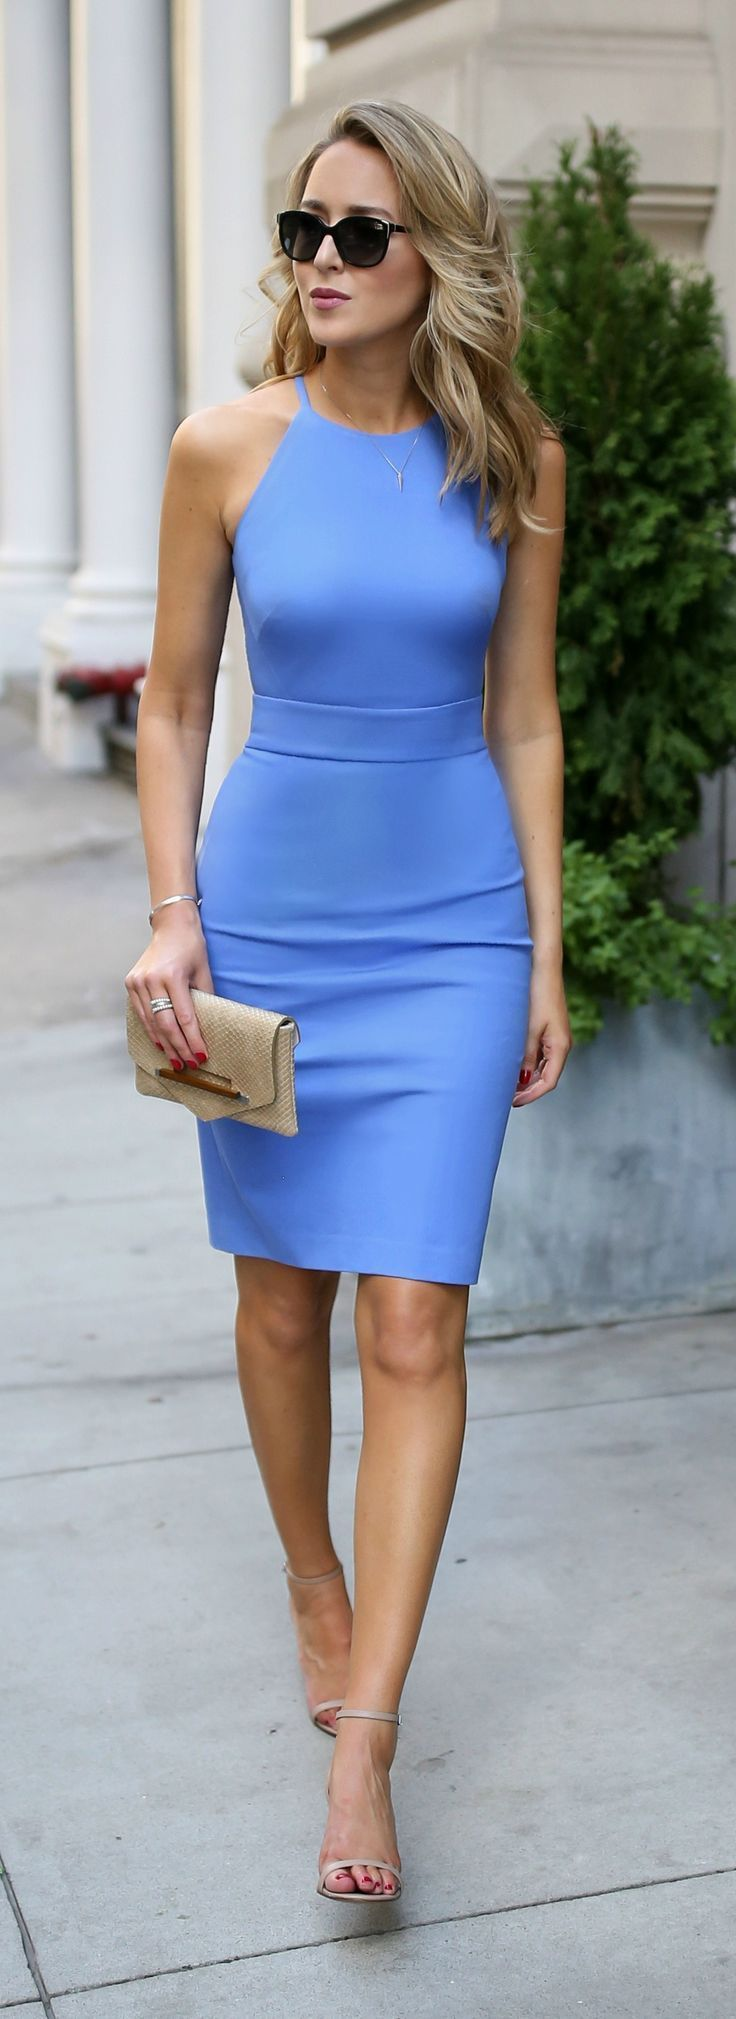 Inspiration look « Day to night » : 3 Day-To-Night Dresses You Need // Periwinkle blue classic sleeveless sheath dre…